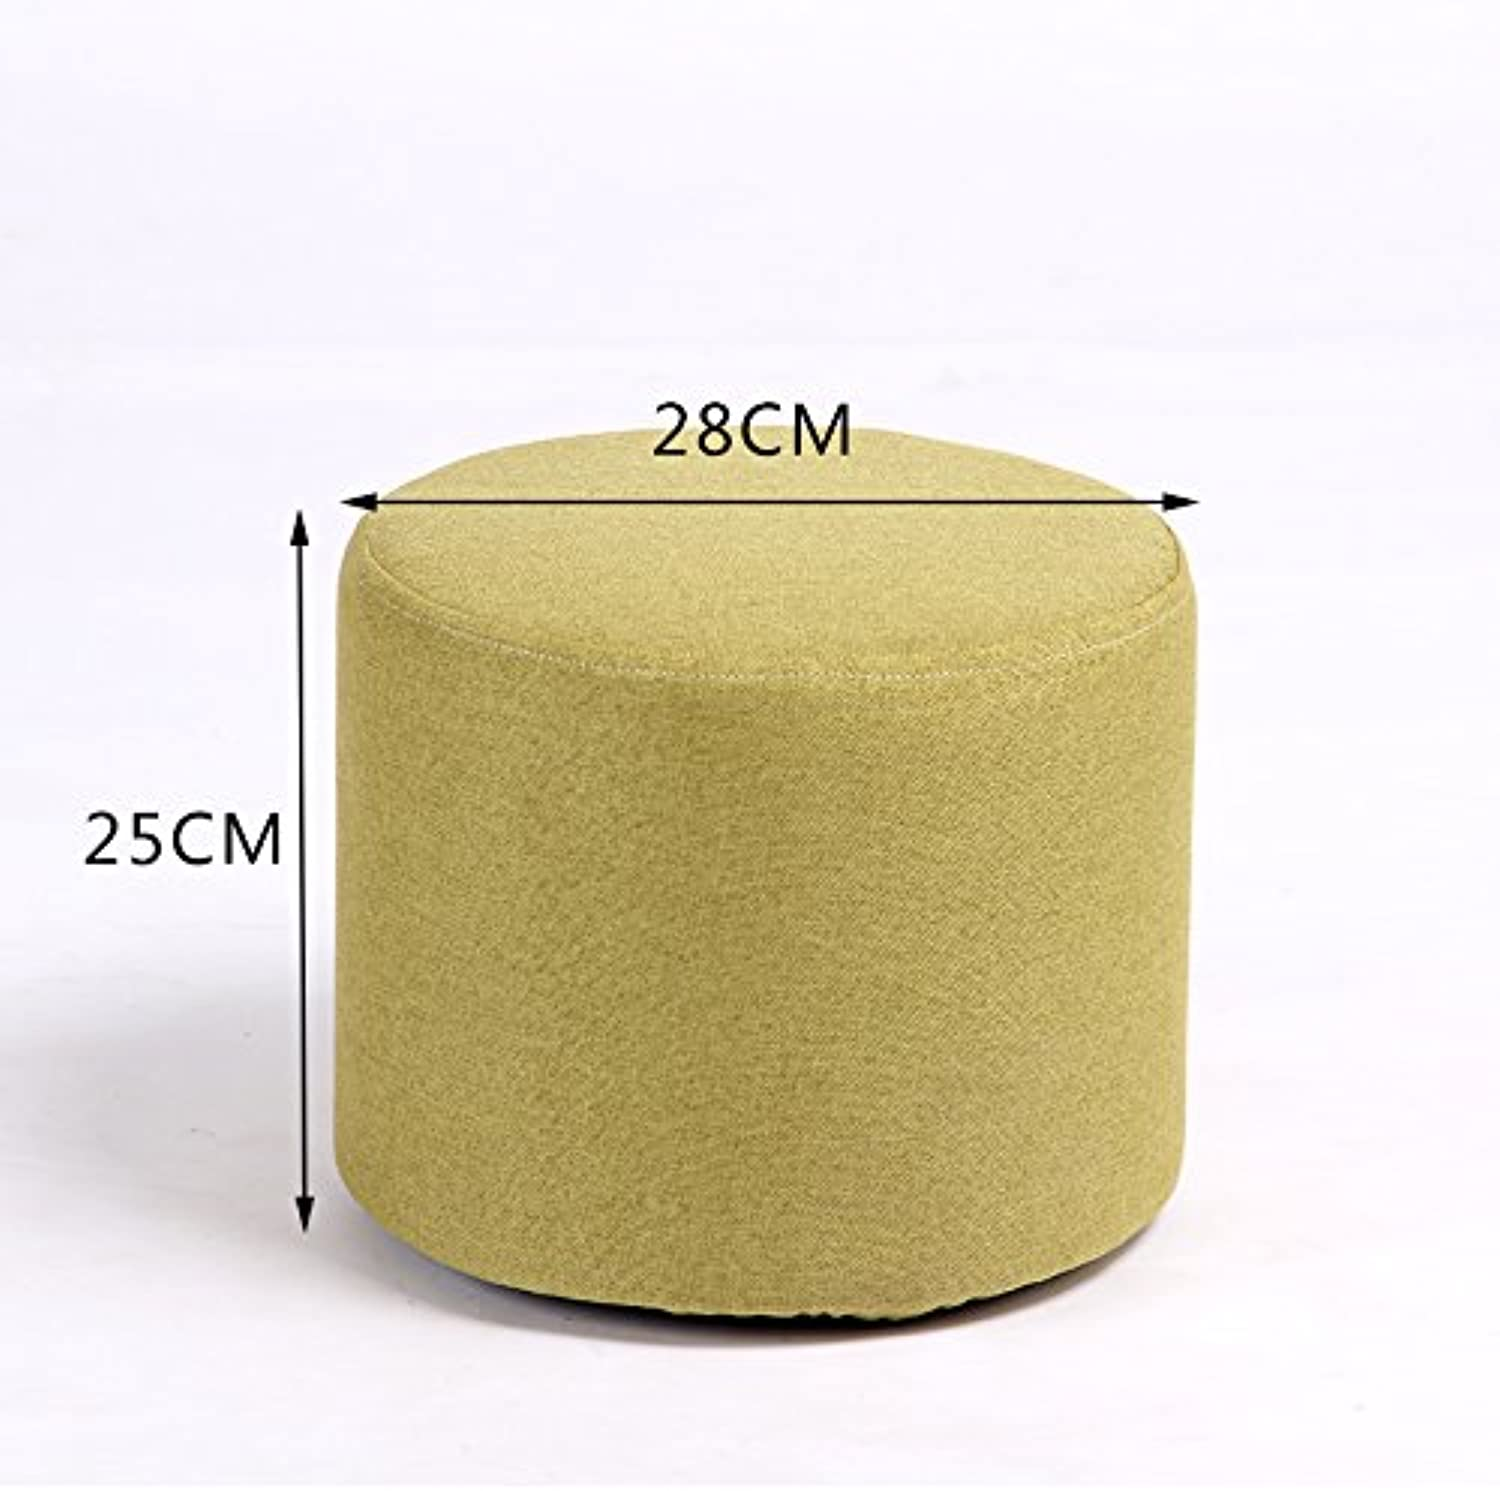 Dana Carrie Stool Stylish Ideas for shoes of Solid Wood Cloth Sofas stools Low stool Round stool wear shoes The Tea Small stools Benches sit Mounds of Grass Green 25  28cm